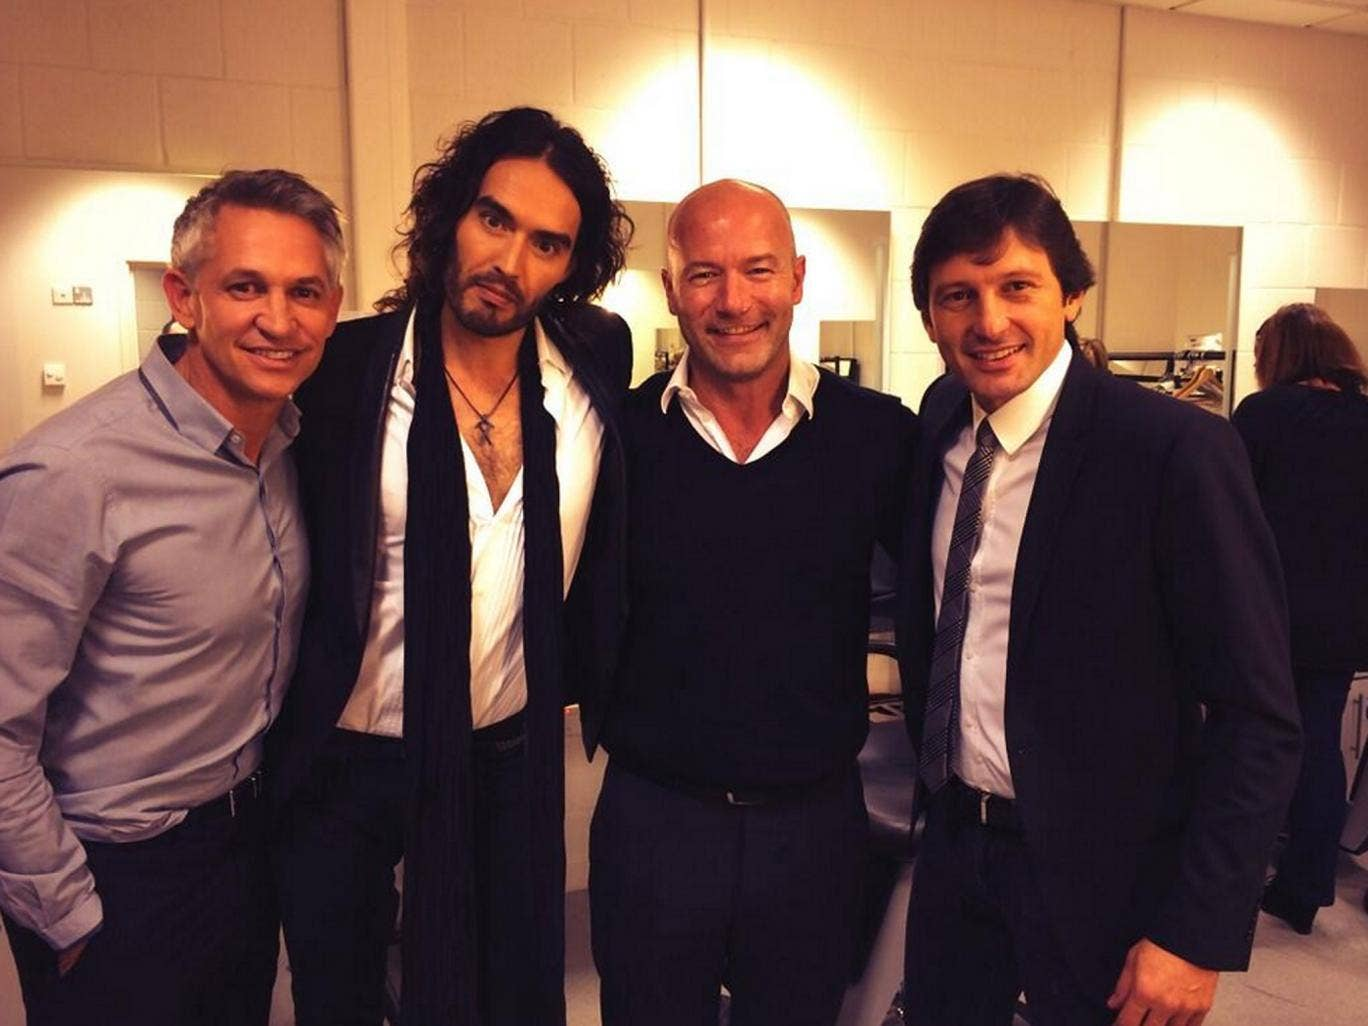 Russell Brand with MOTD regulars Gary Lineker and Alan Shearer, and Brazilian footballer Leonardo